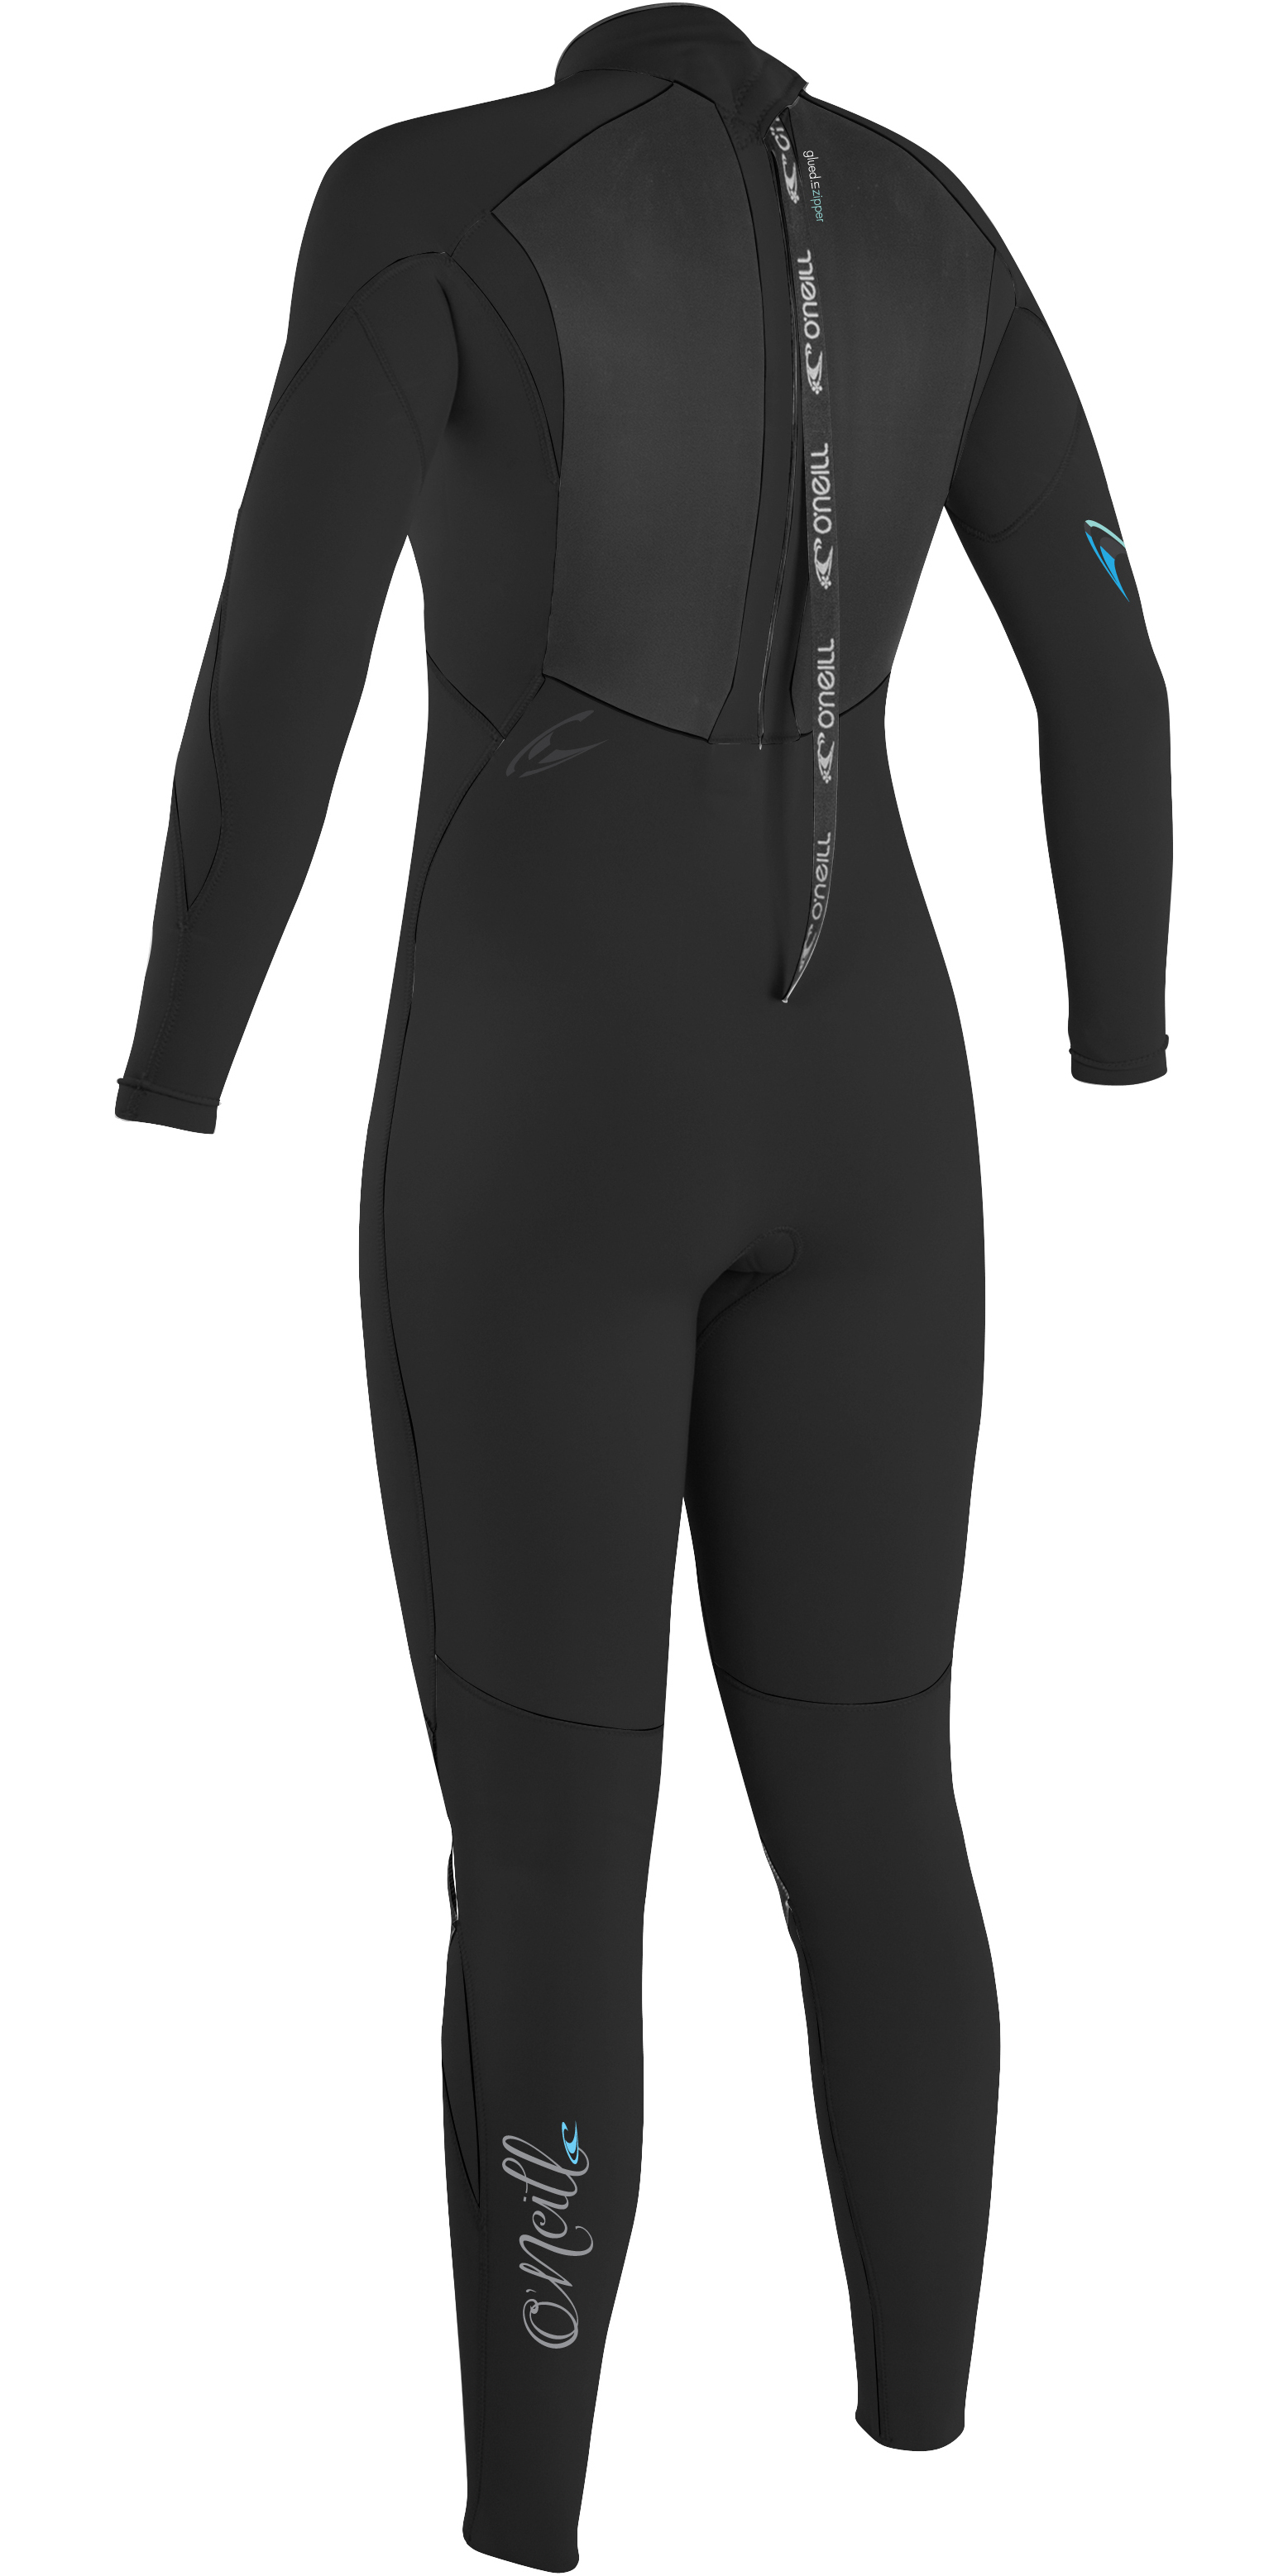 2018 O'Neill Womens Epic 5 / 4mm Back Zip GBS Wetsuit BLACK / BLACK 4218